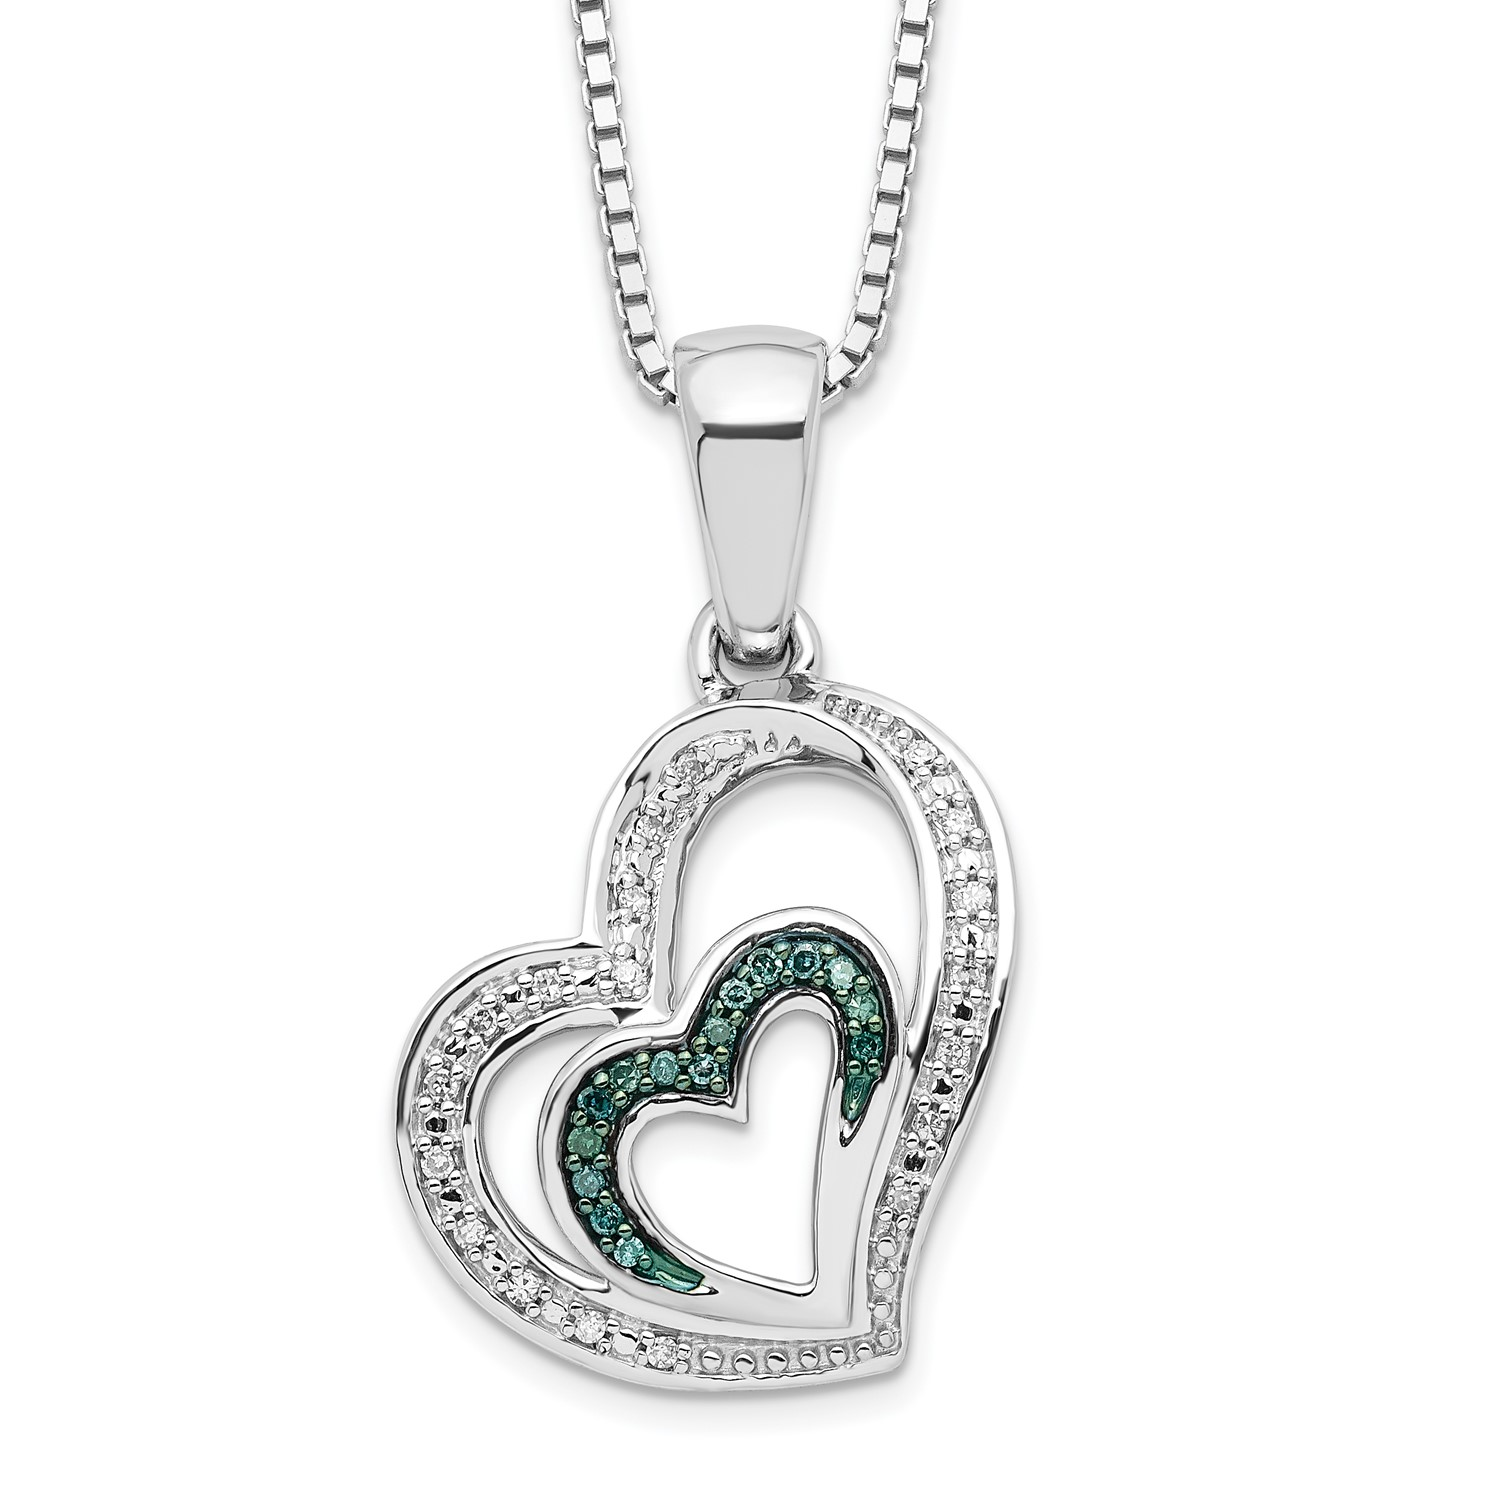 6488830cae690 Details about Sterling Silver W/ Rhodium - plated Blue and White Diamond  Heart Pendant